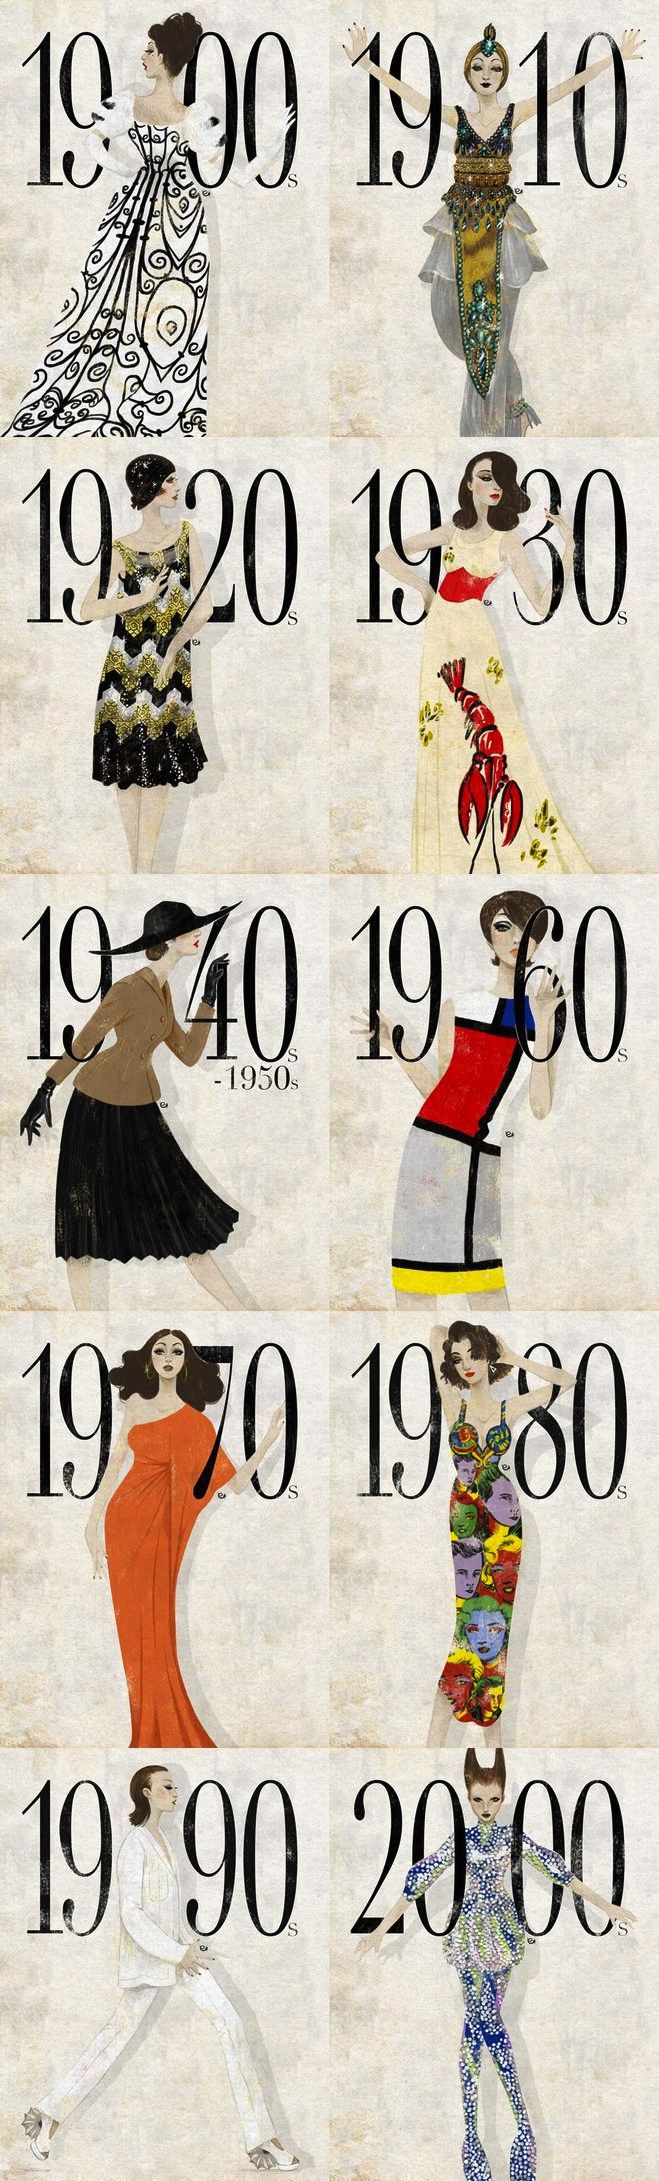 i like these illustrations because they show fashion through the centuries giving people a taste of fashion through the times.